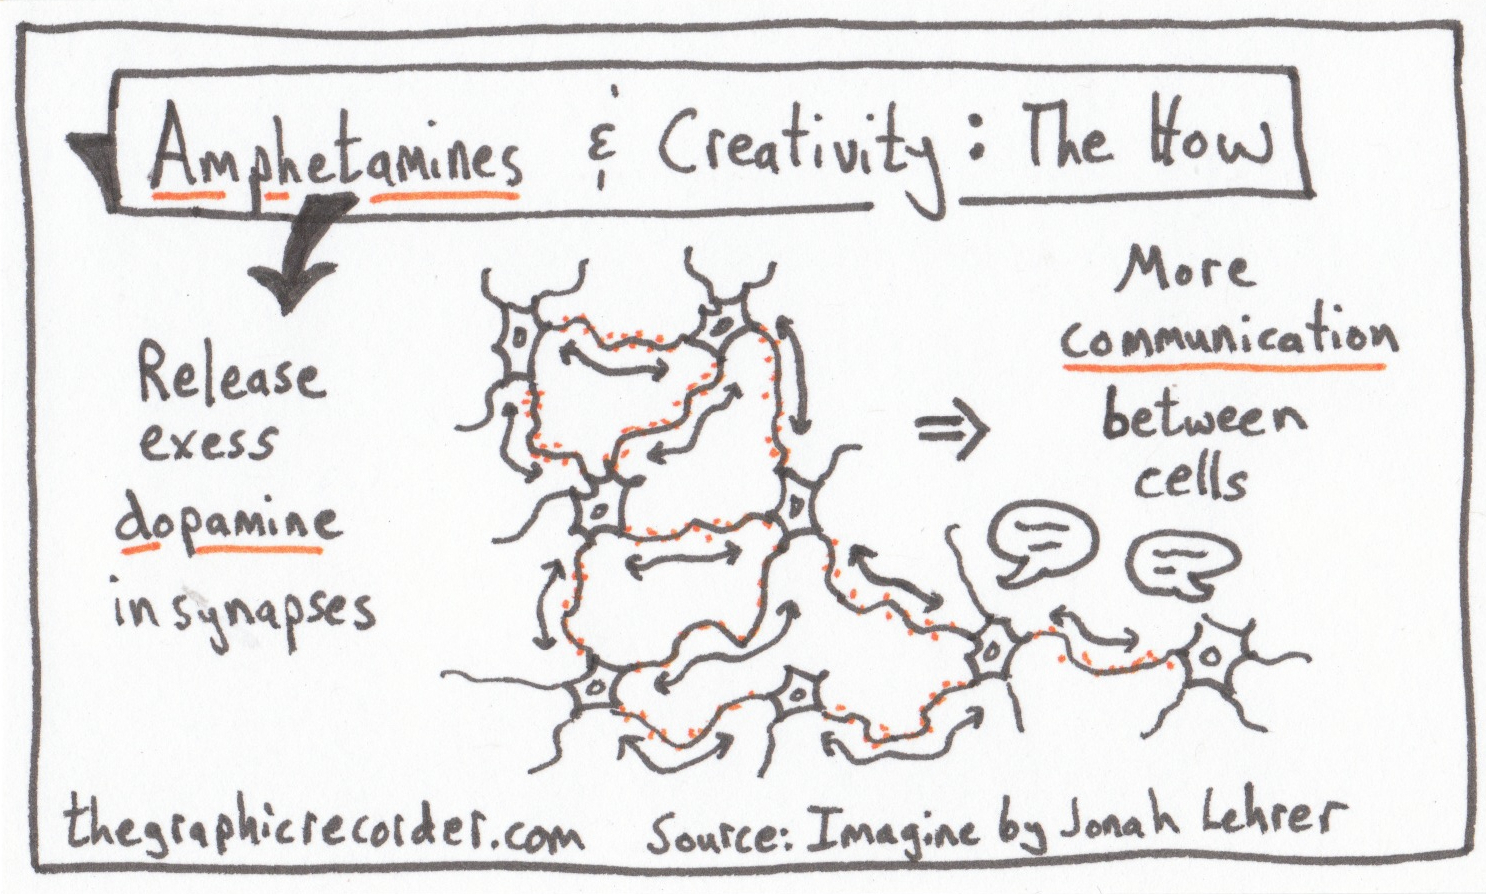 The Graphic Recorder - One Card One Concept - Amphetamines and Creativity The How - Jonah Lehrer - Imagine